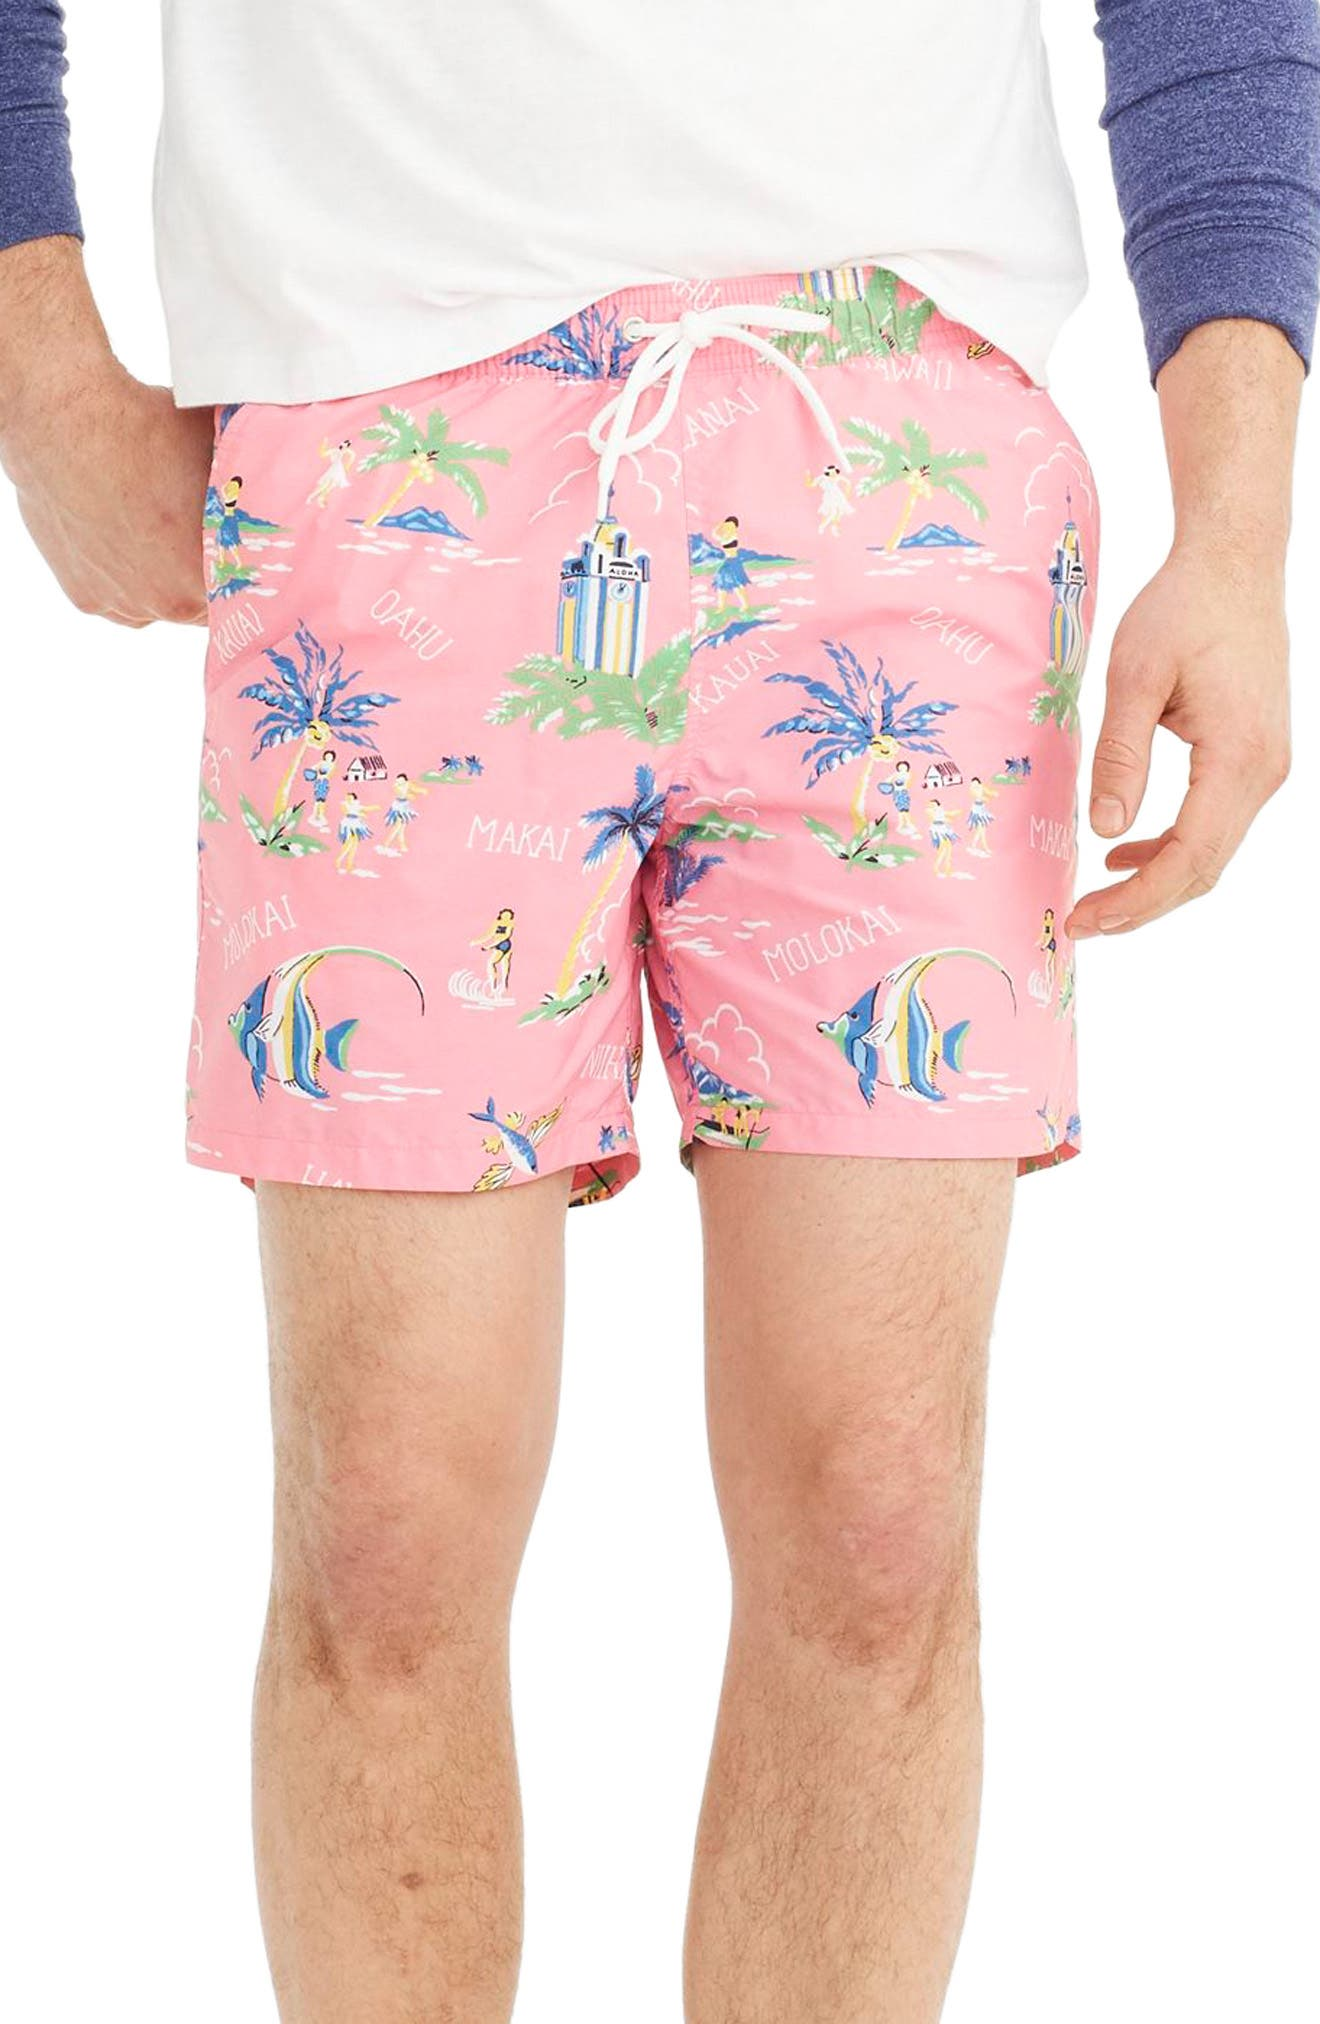 J.Crew Hawaii Print Swim Trunks